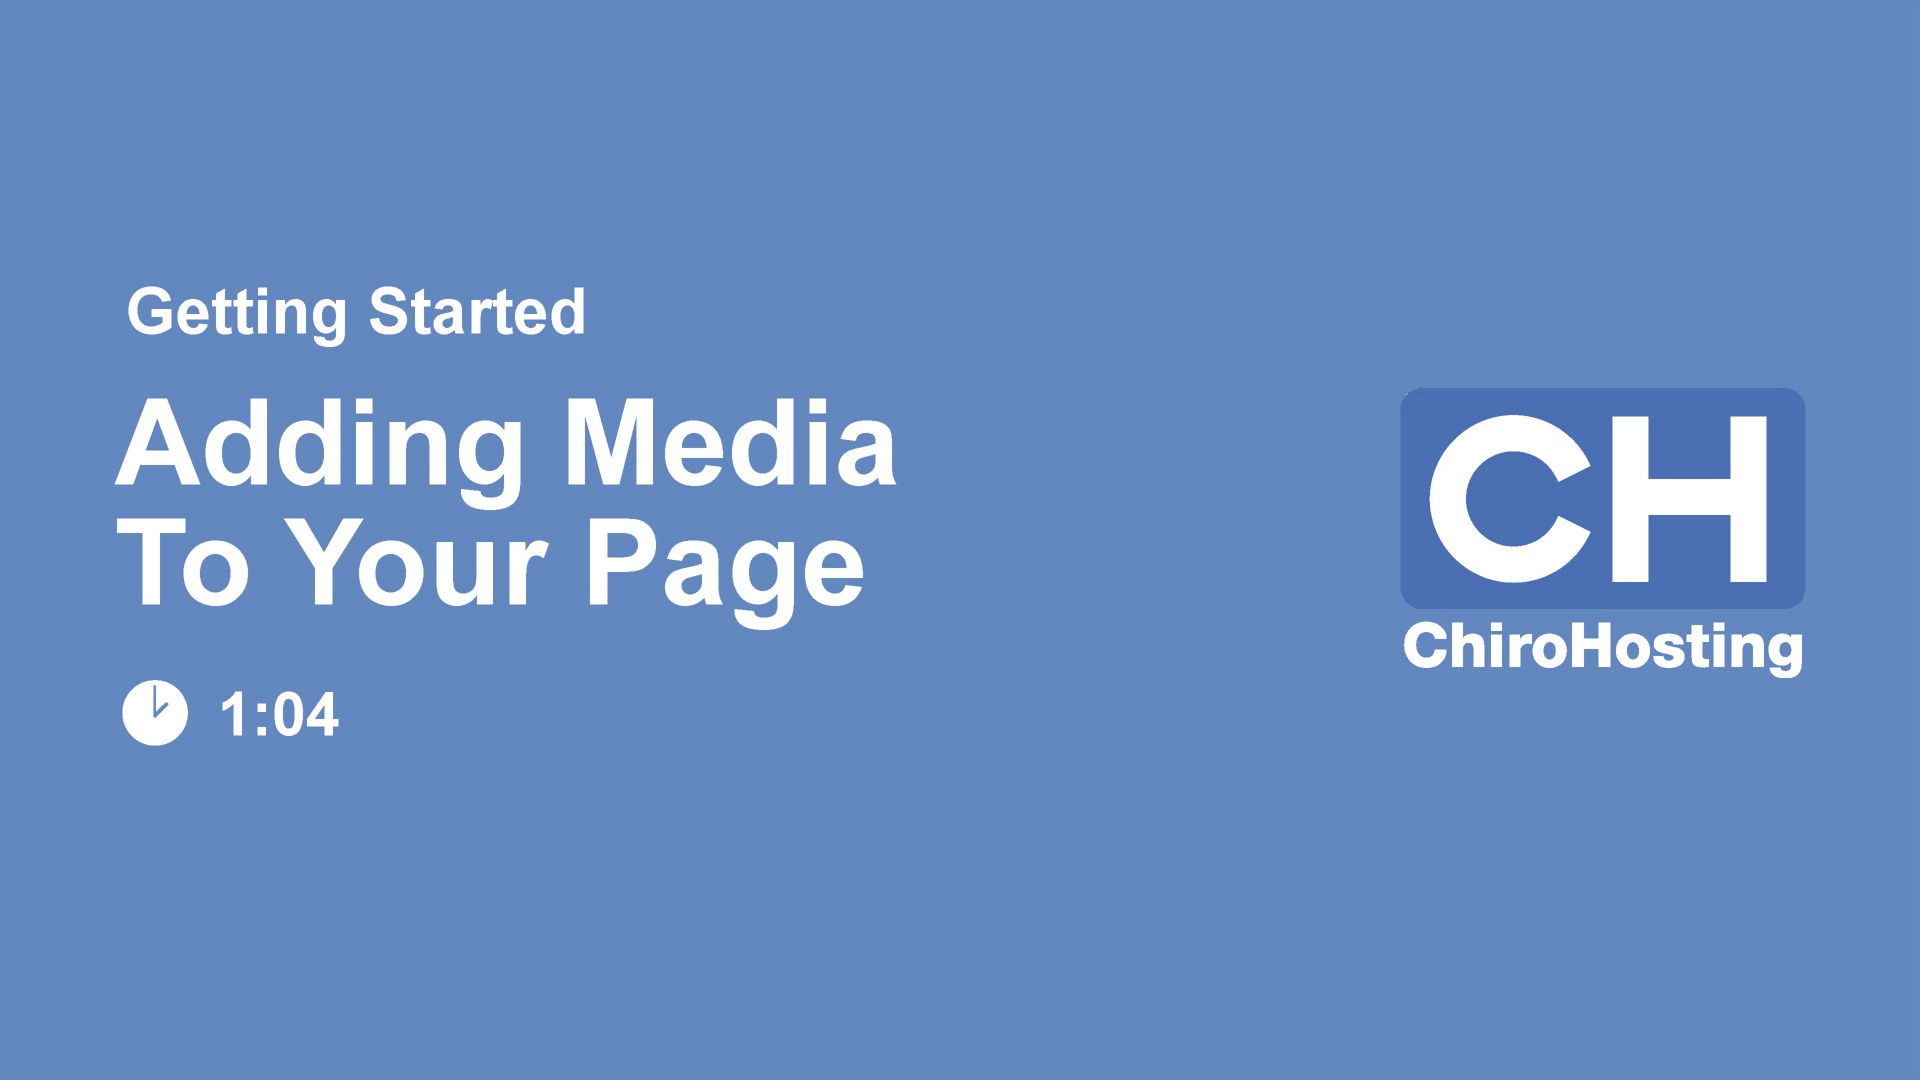 Add Media to Page